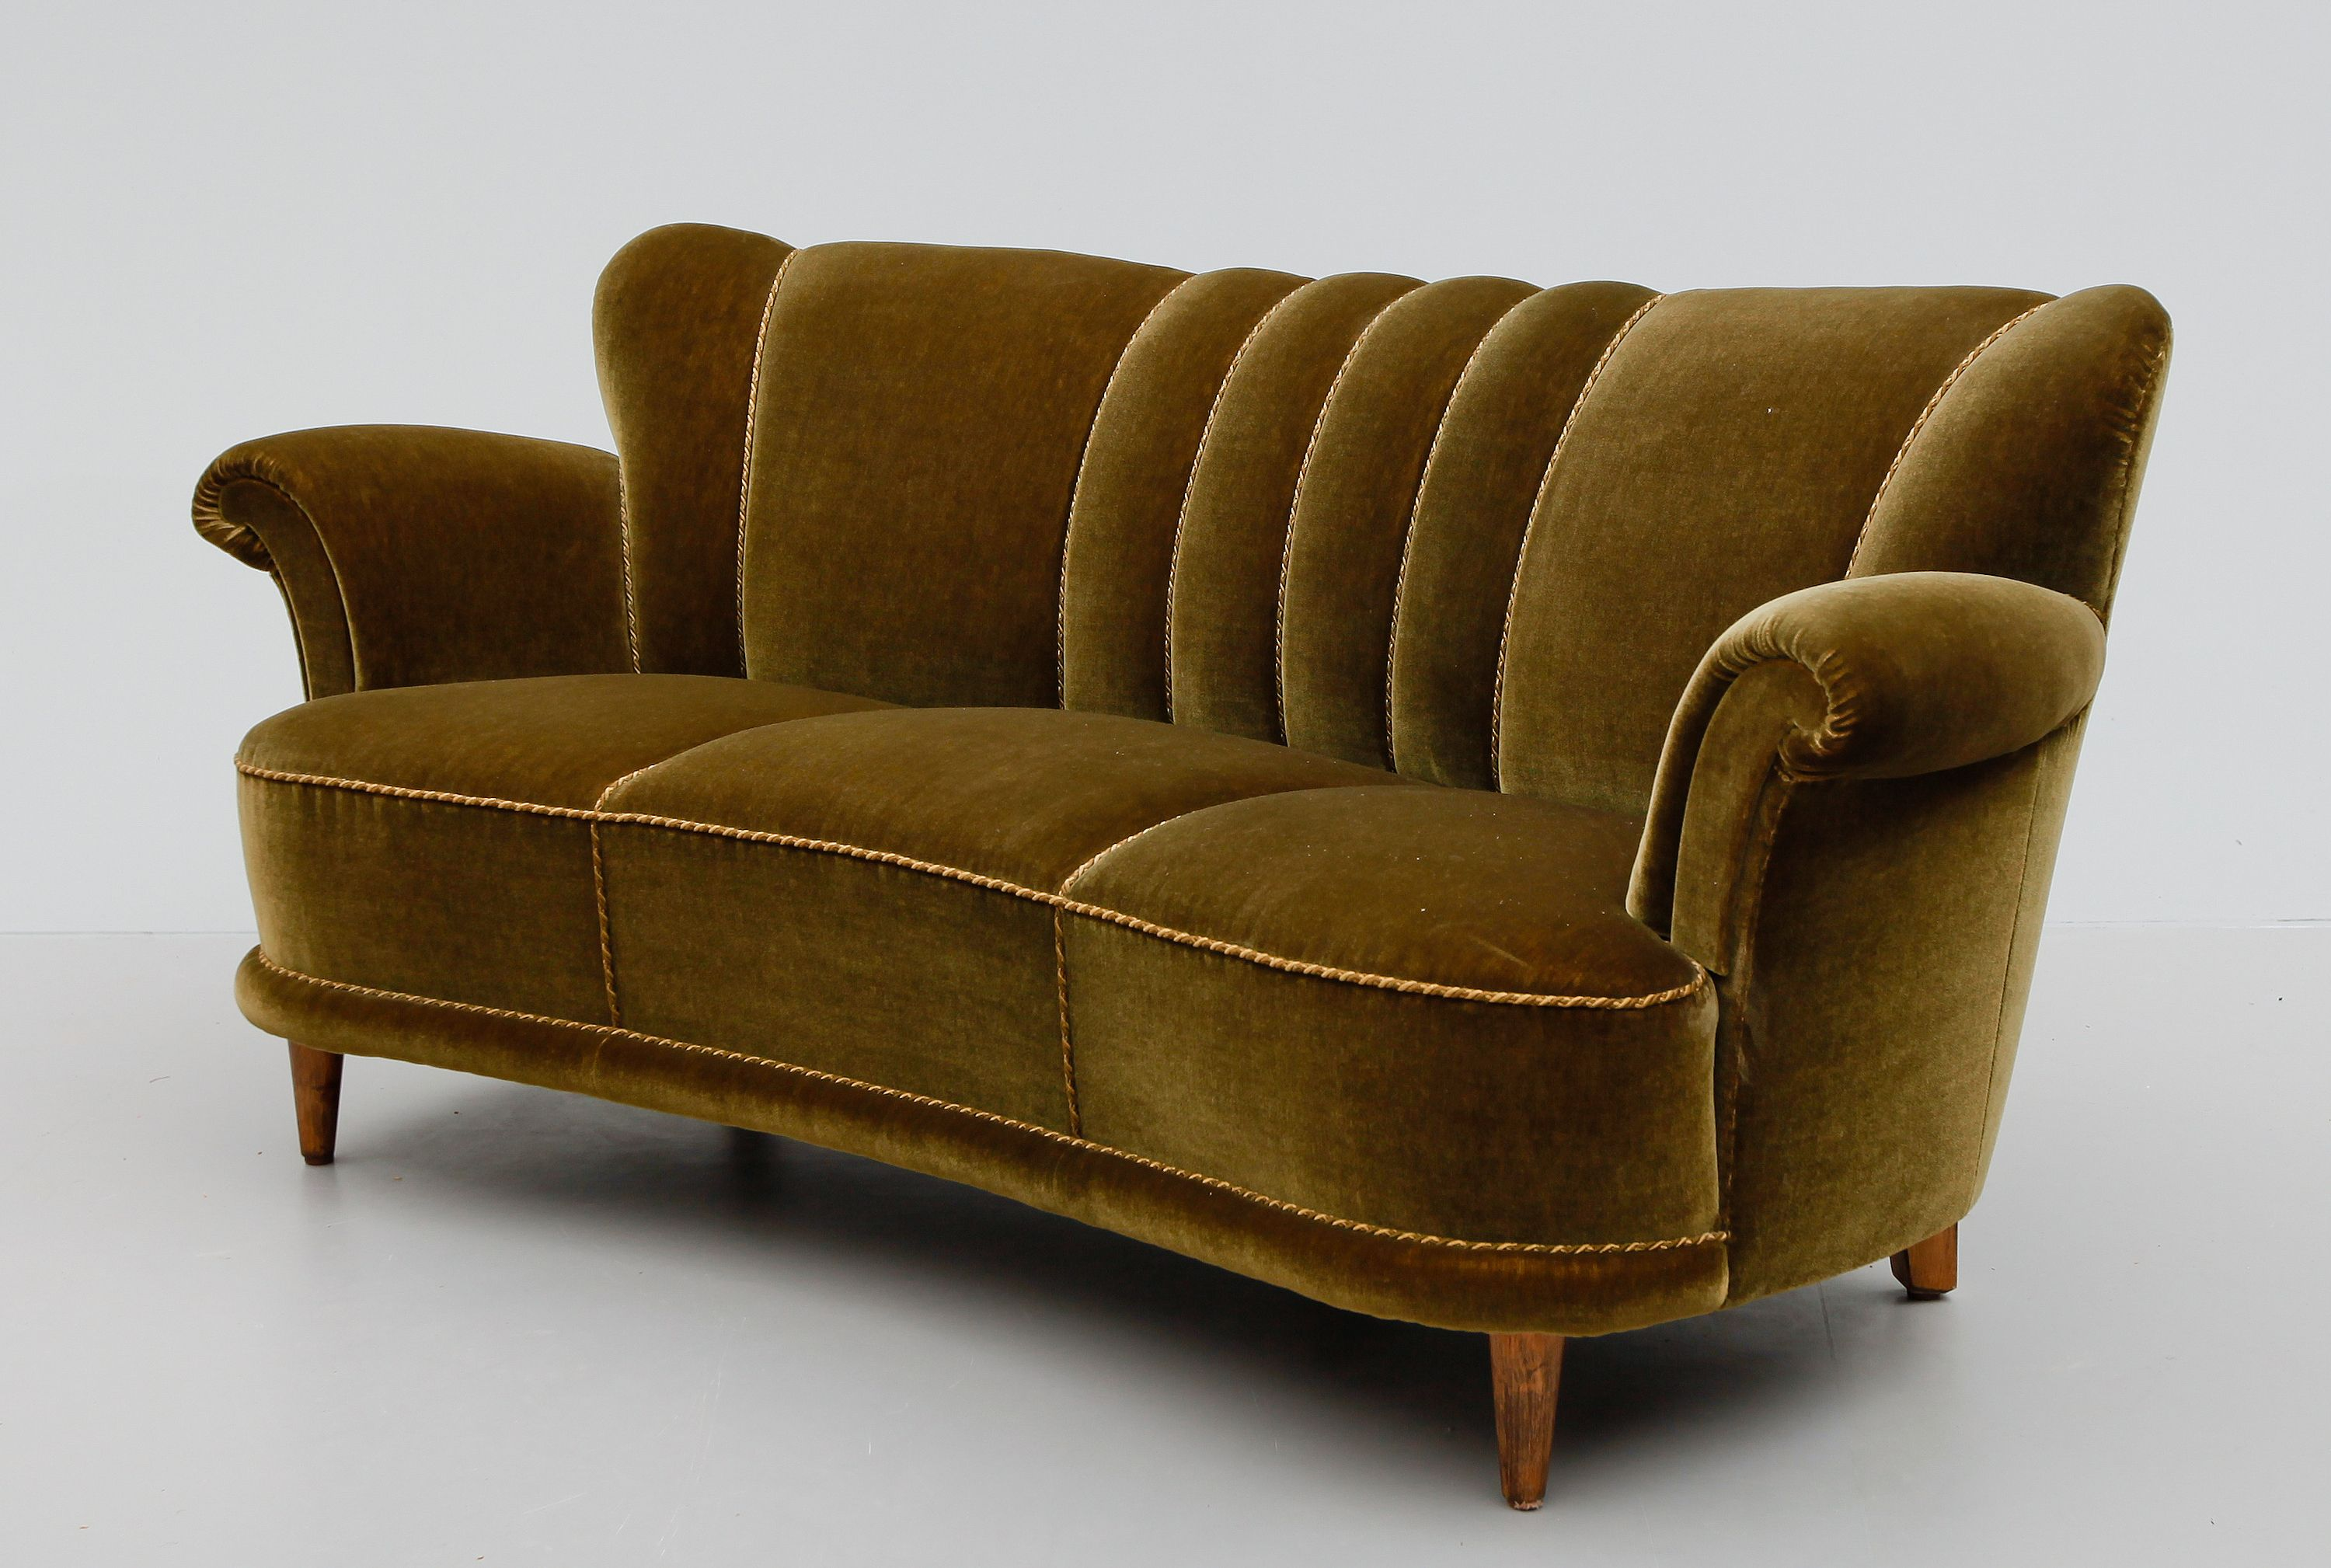 Cars Sofa Chair Signature Design By Ashley Bed The 1940s Had Curves Women Furniture 3